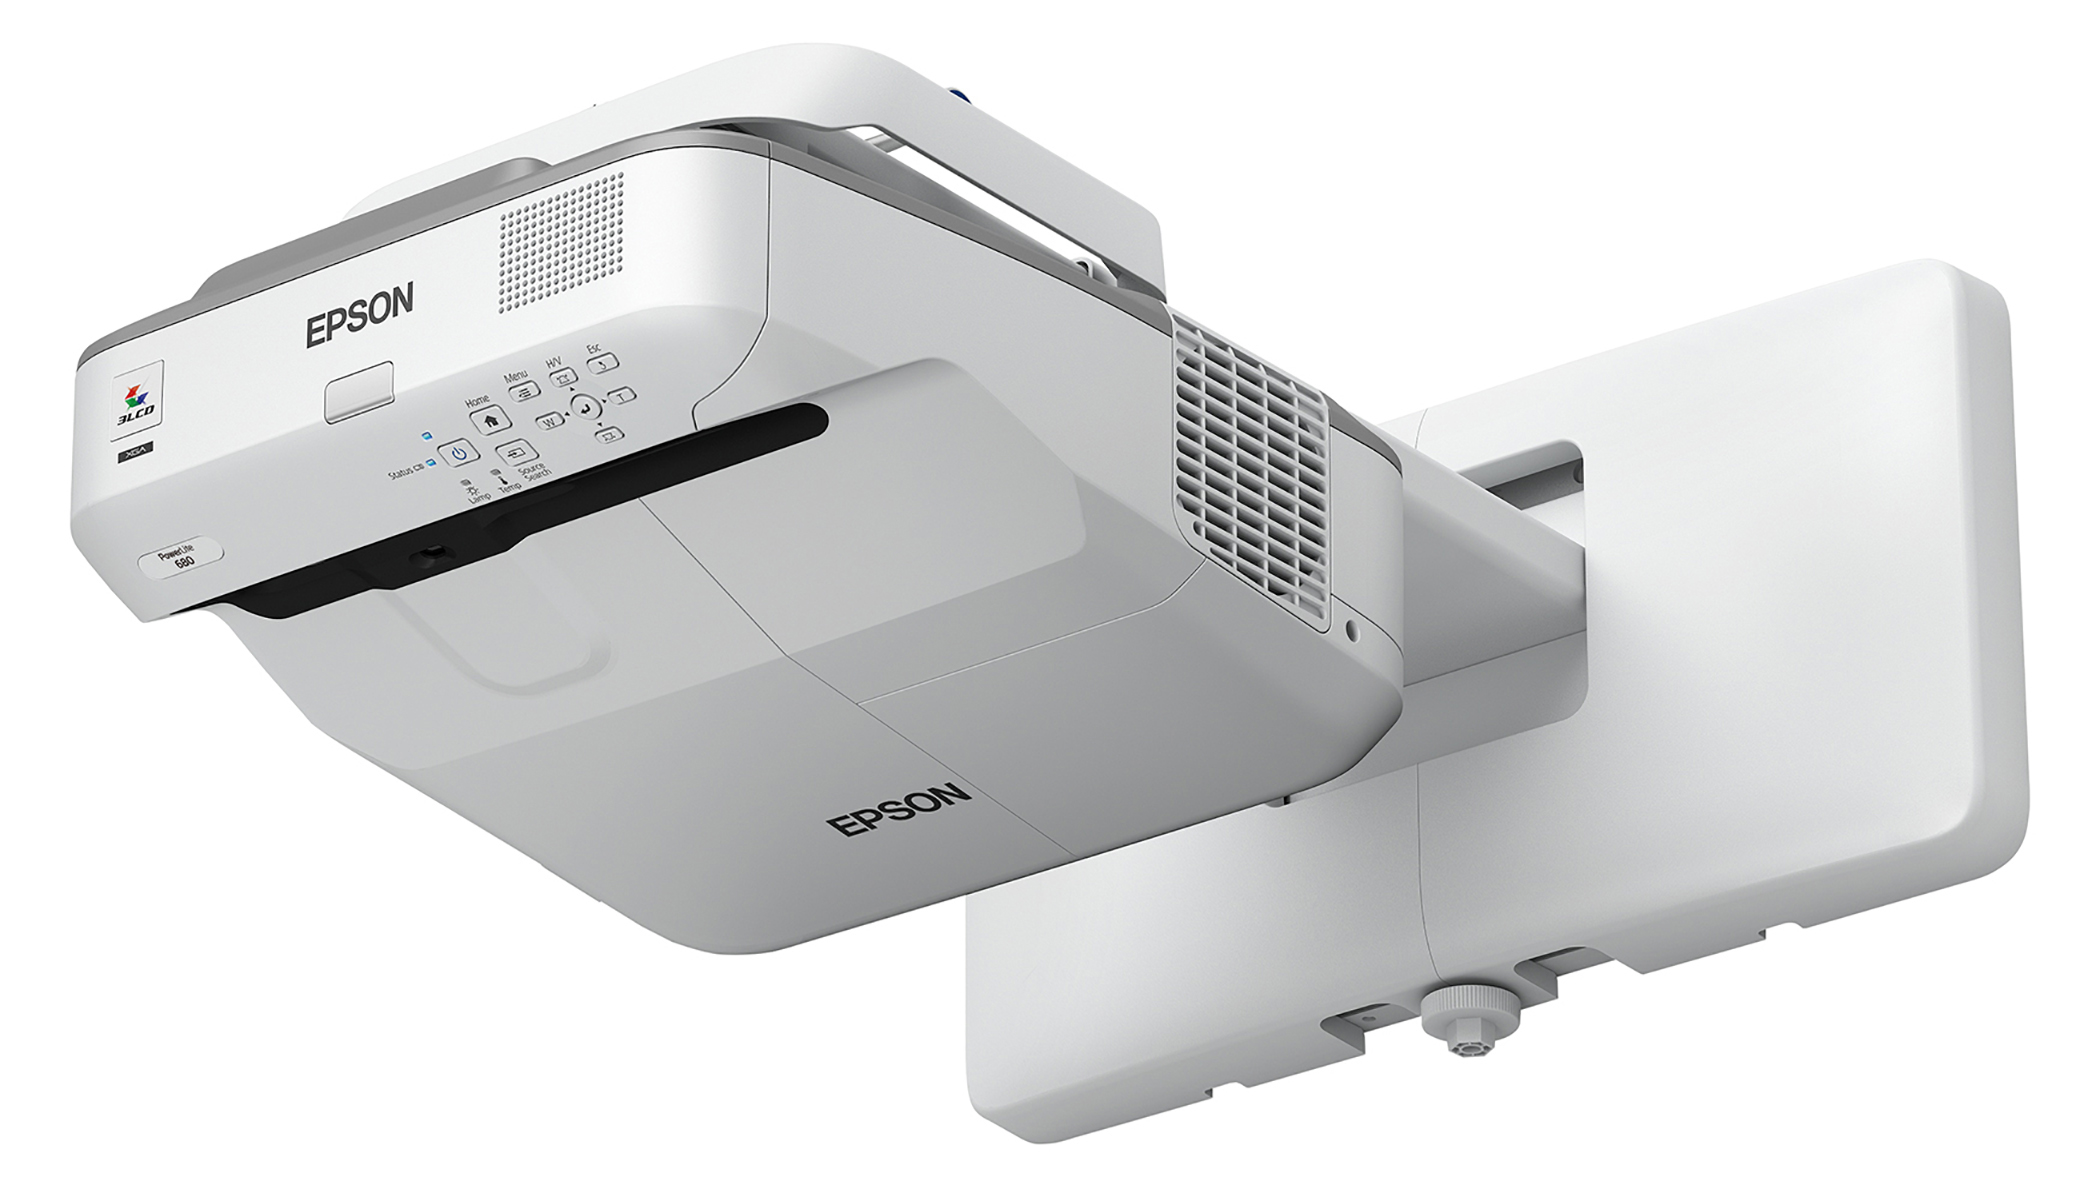 EPSON PowerLite 680 3500lm XGA Ultra Short-Throw Projector